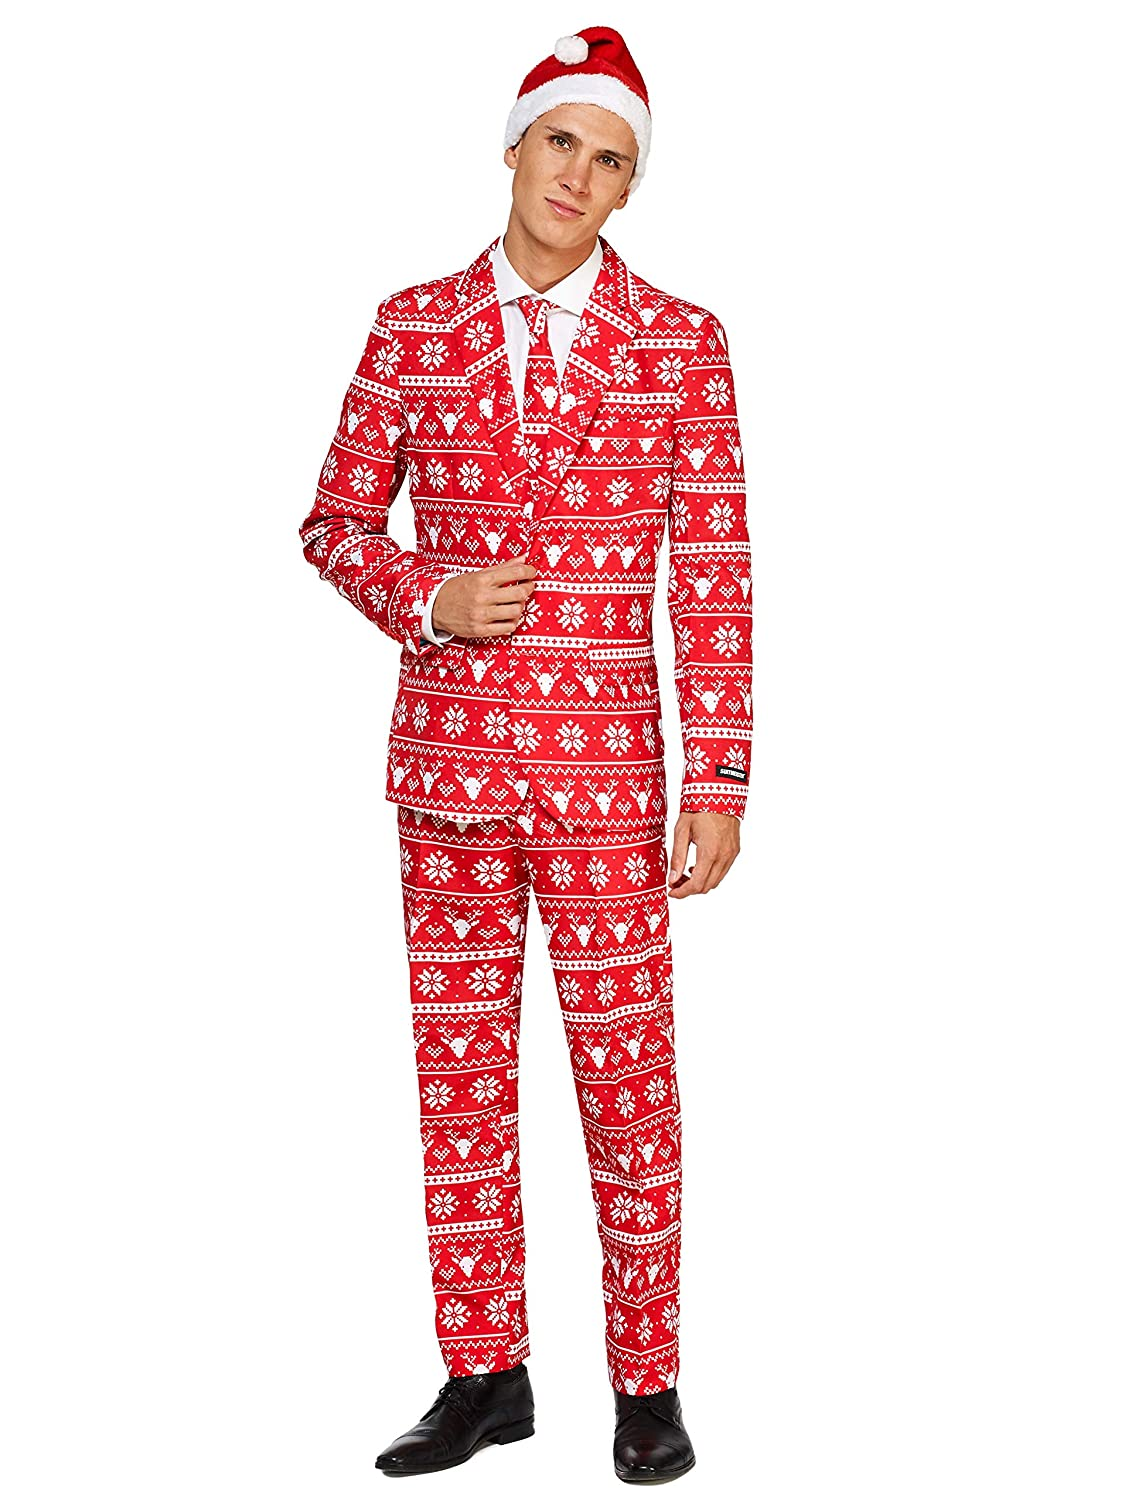 f6c29374732d56 Amazon.com: Suitmeister Christmas Suits for Men in Different Prints – Ugly  Xmas Sweater Costumes Include Jacket Pants & Tie + Free Hat: Clothing